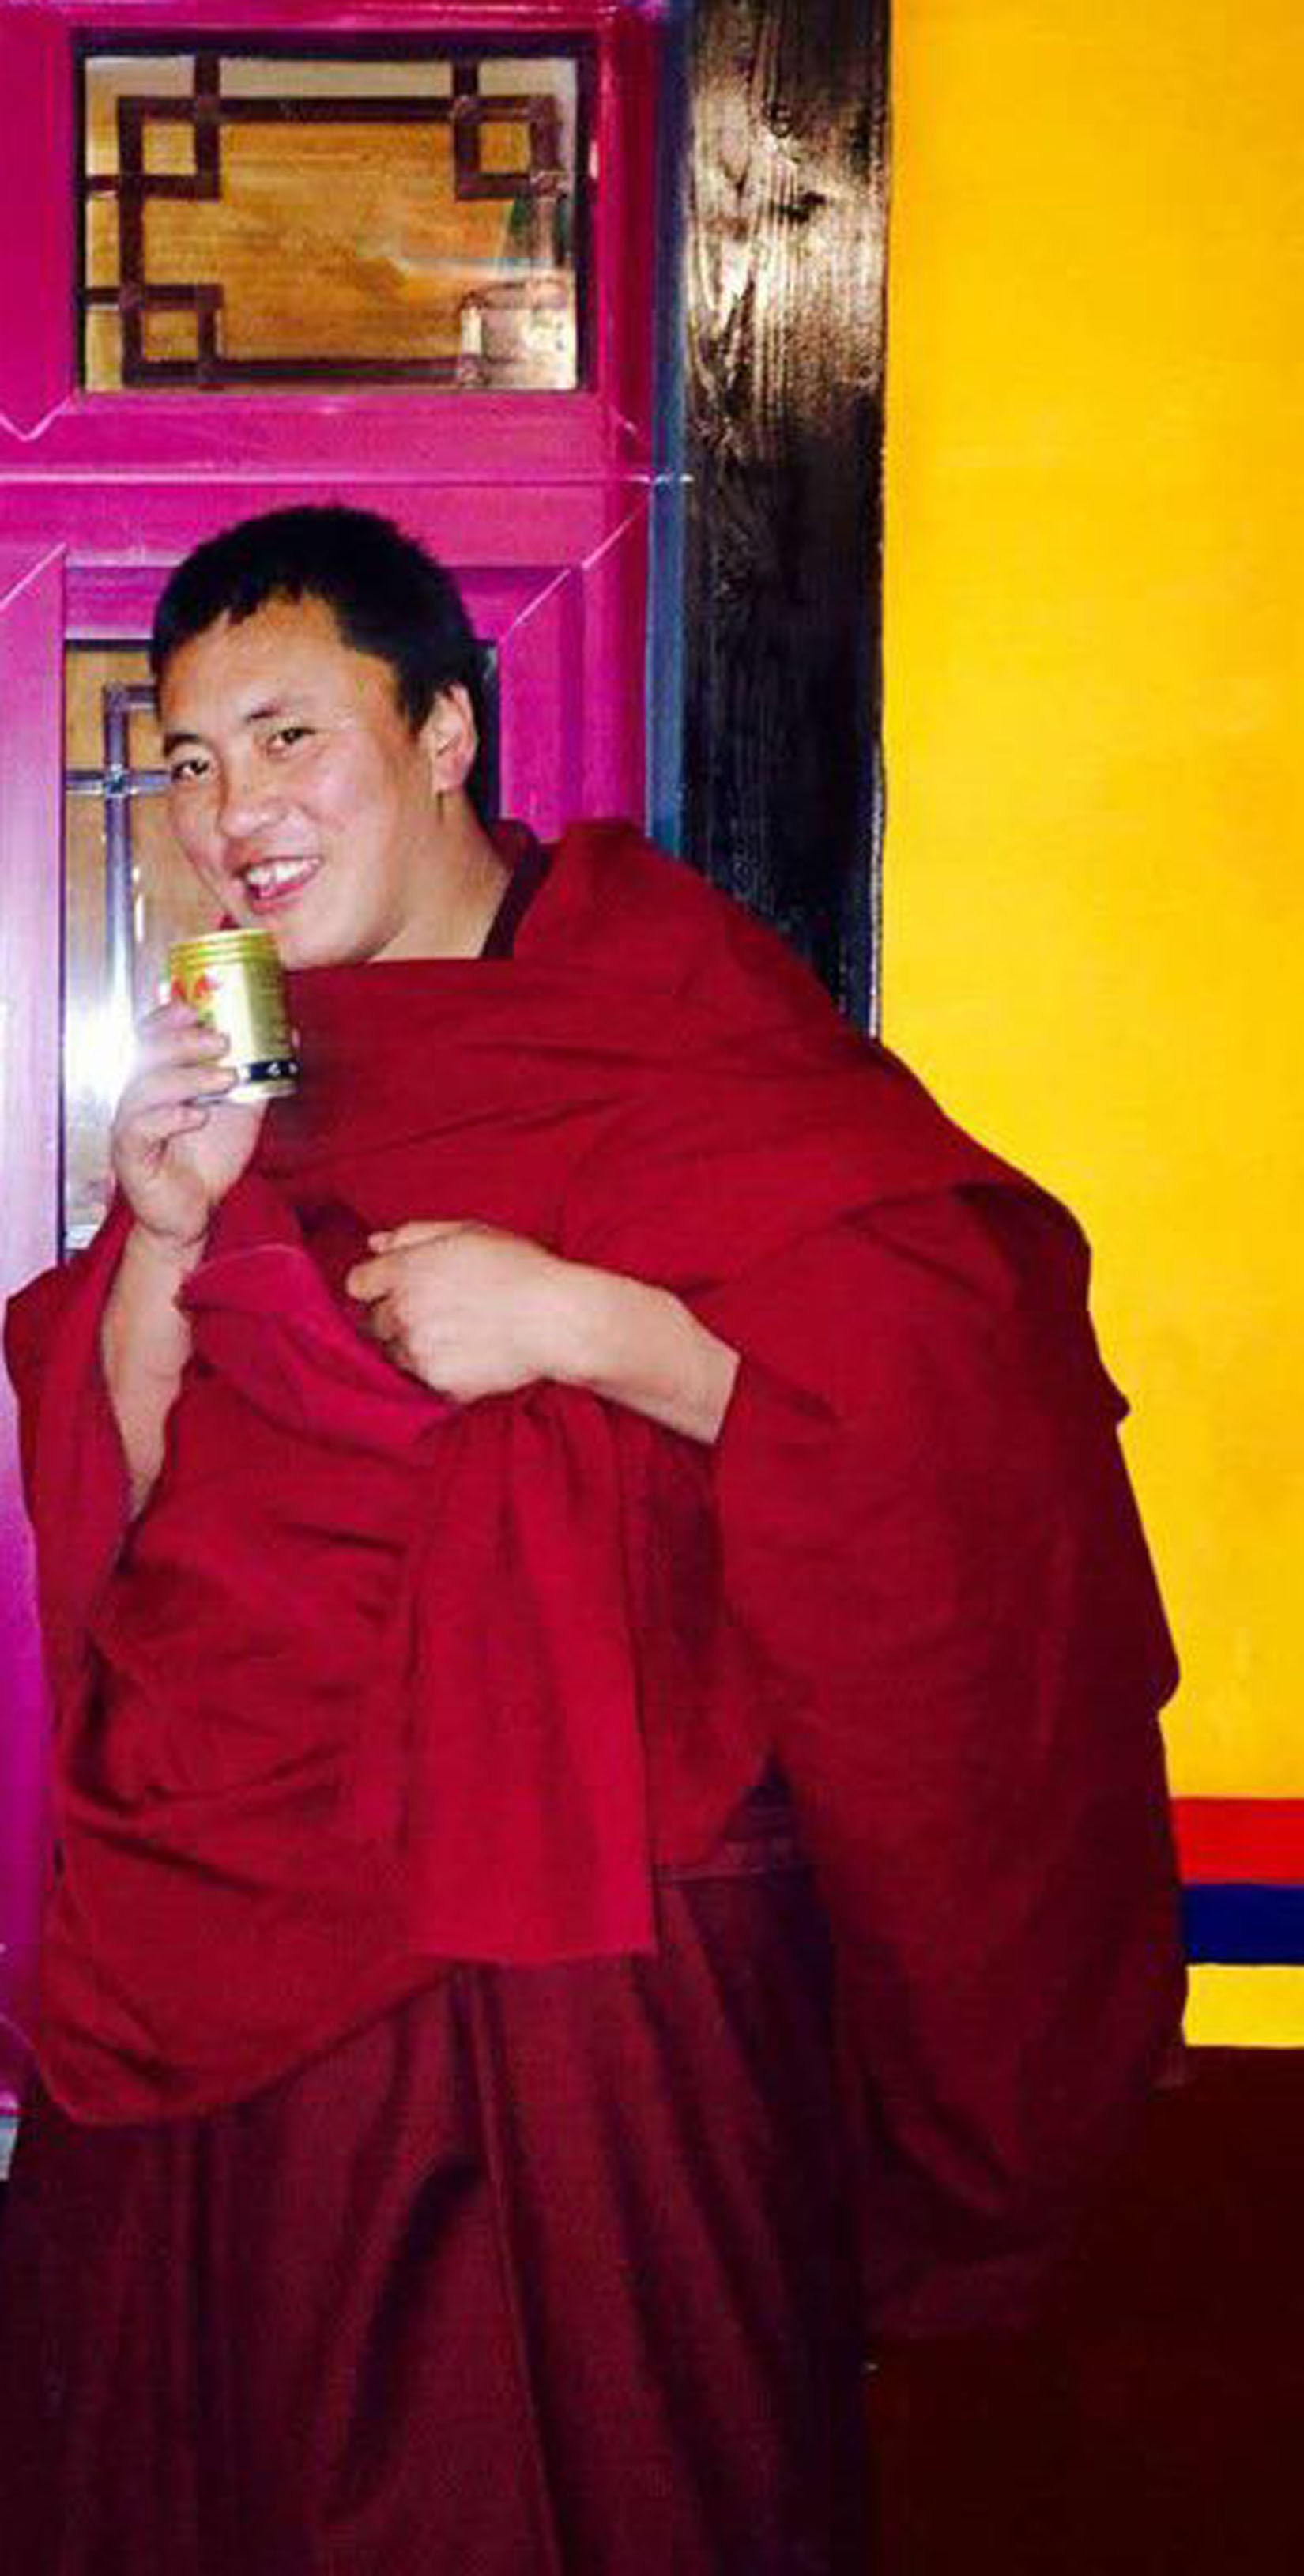 Lobsang Gephel was given 12 years prison term